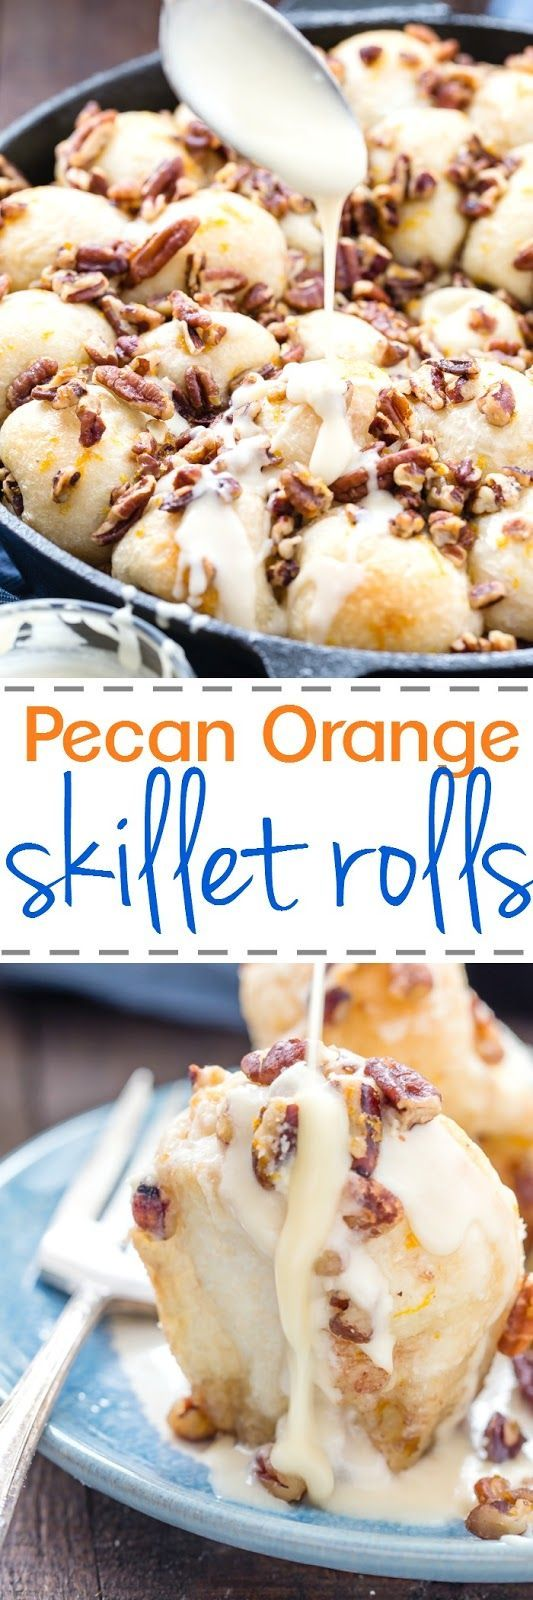 These Orange Pecan Pull Apart rolls made in one skillet and will become your favorite breakfast treat with creamy orange glaze and crunchy pecans.  Perfect for any day and special holidays like Easter and Mother's Day